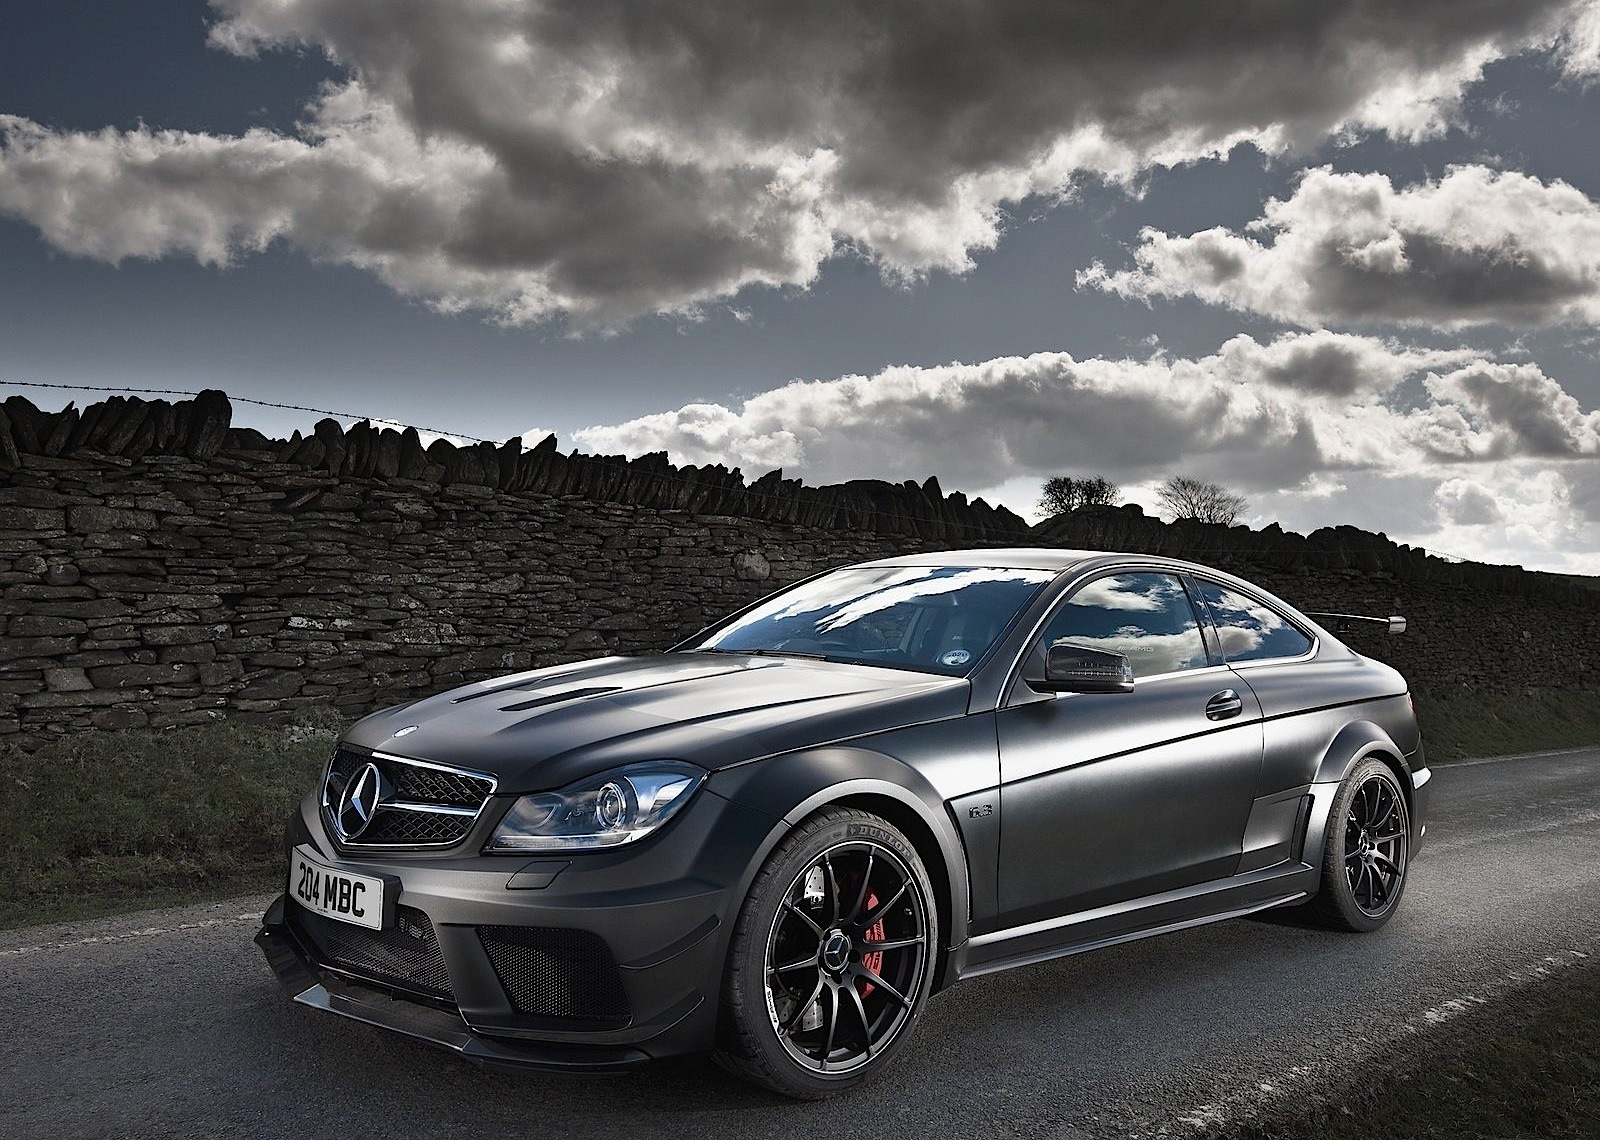 mercedes benz c 63 amg coupe black series c204 specs photos 2011 2012 2013 2014. Black Bedroom Furniture Sets. Home Design Ideas